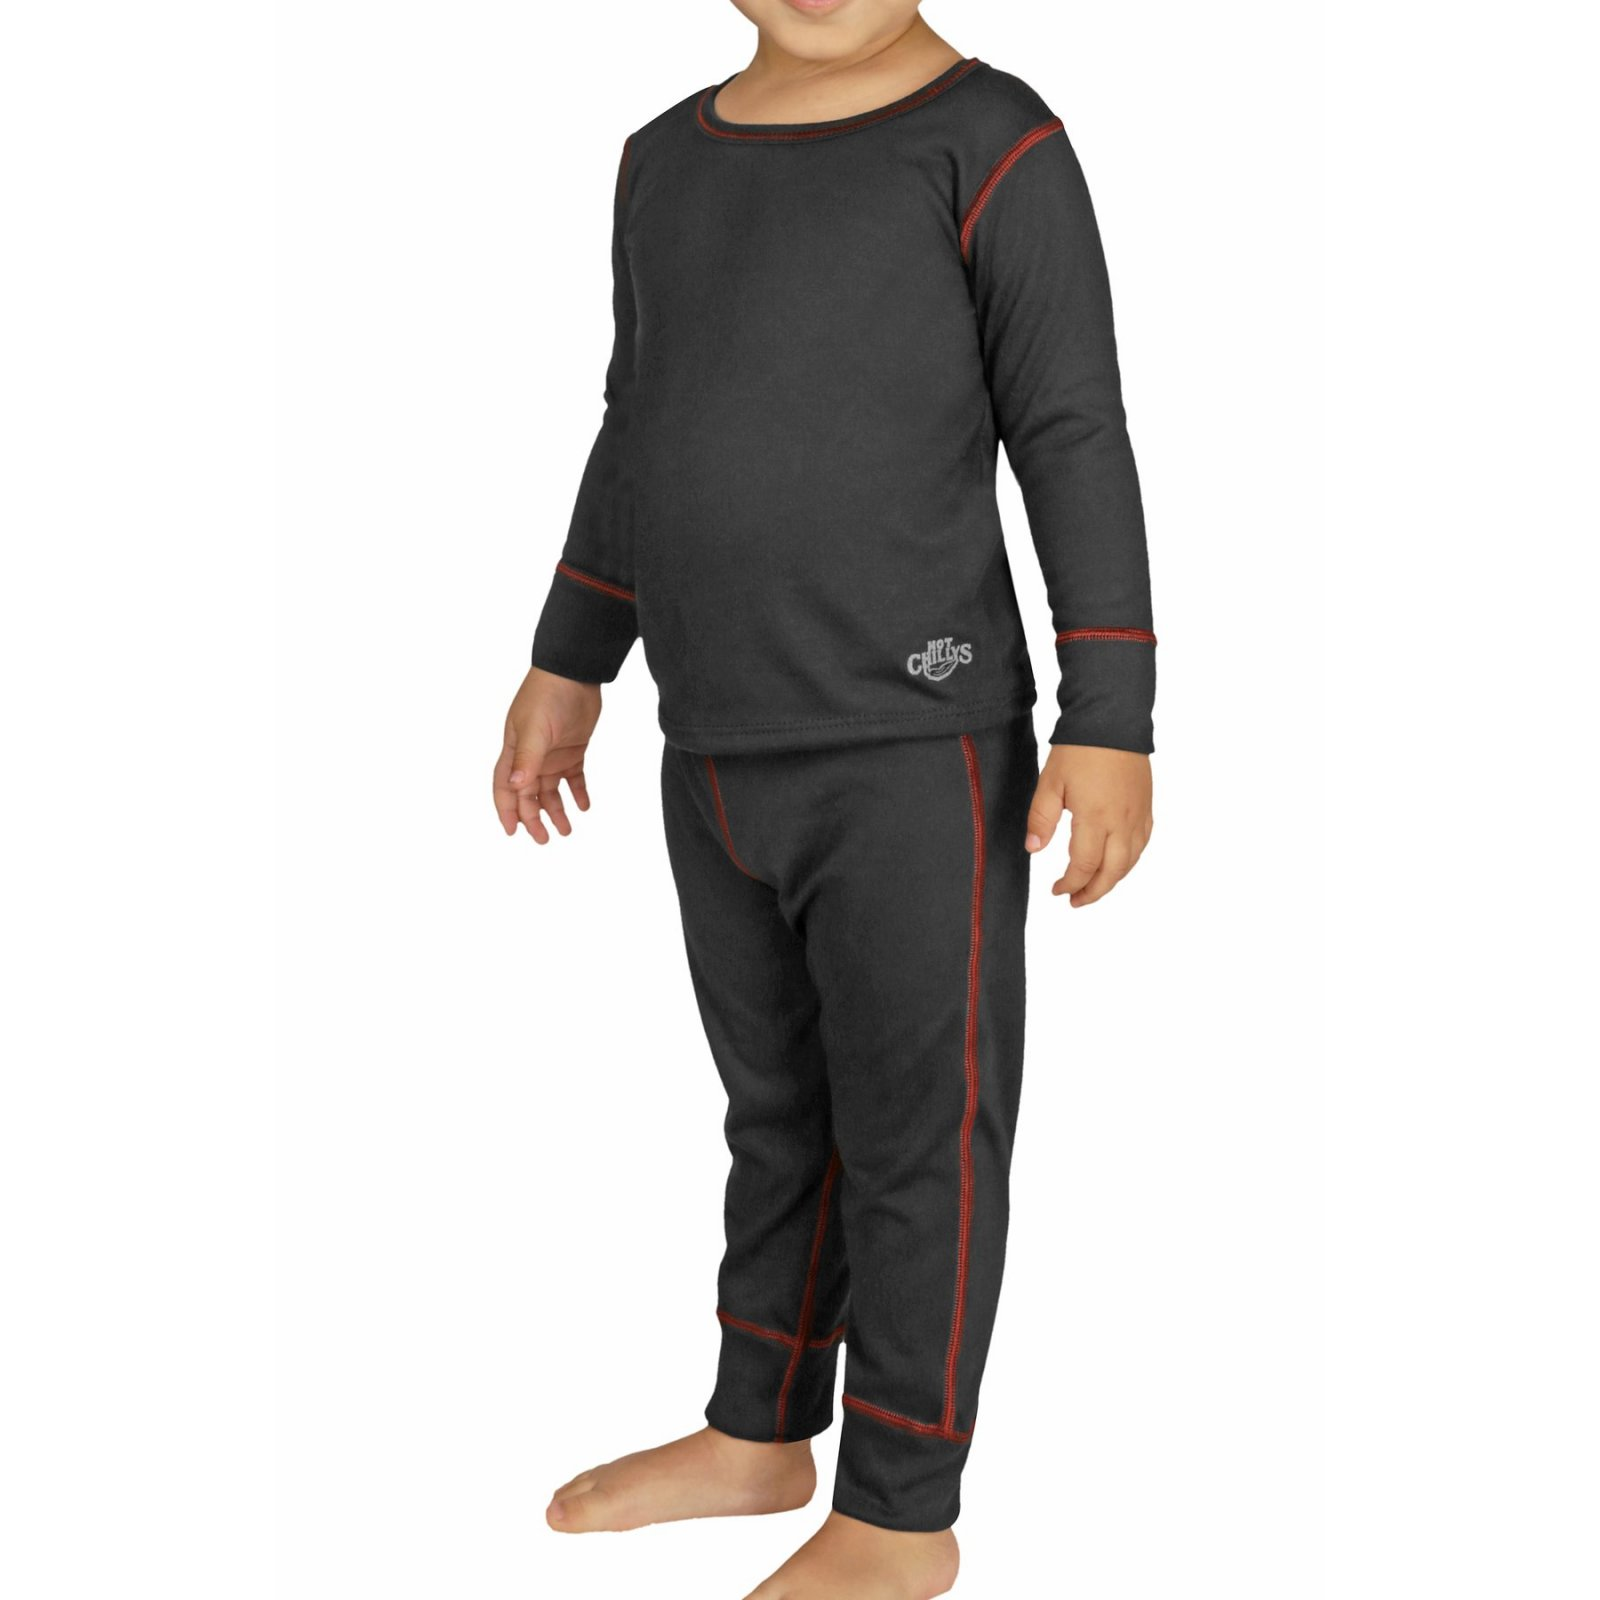 Hot Chillys Youth Midweight Toddler Set